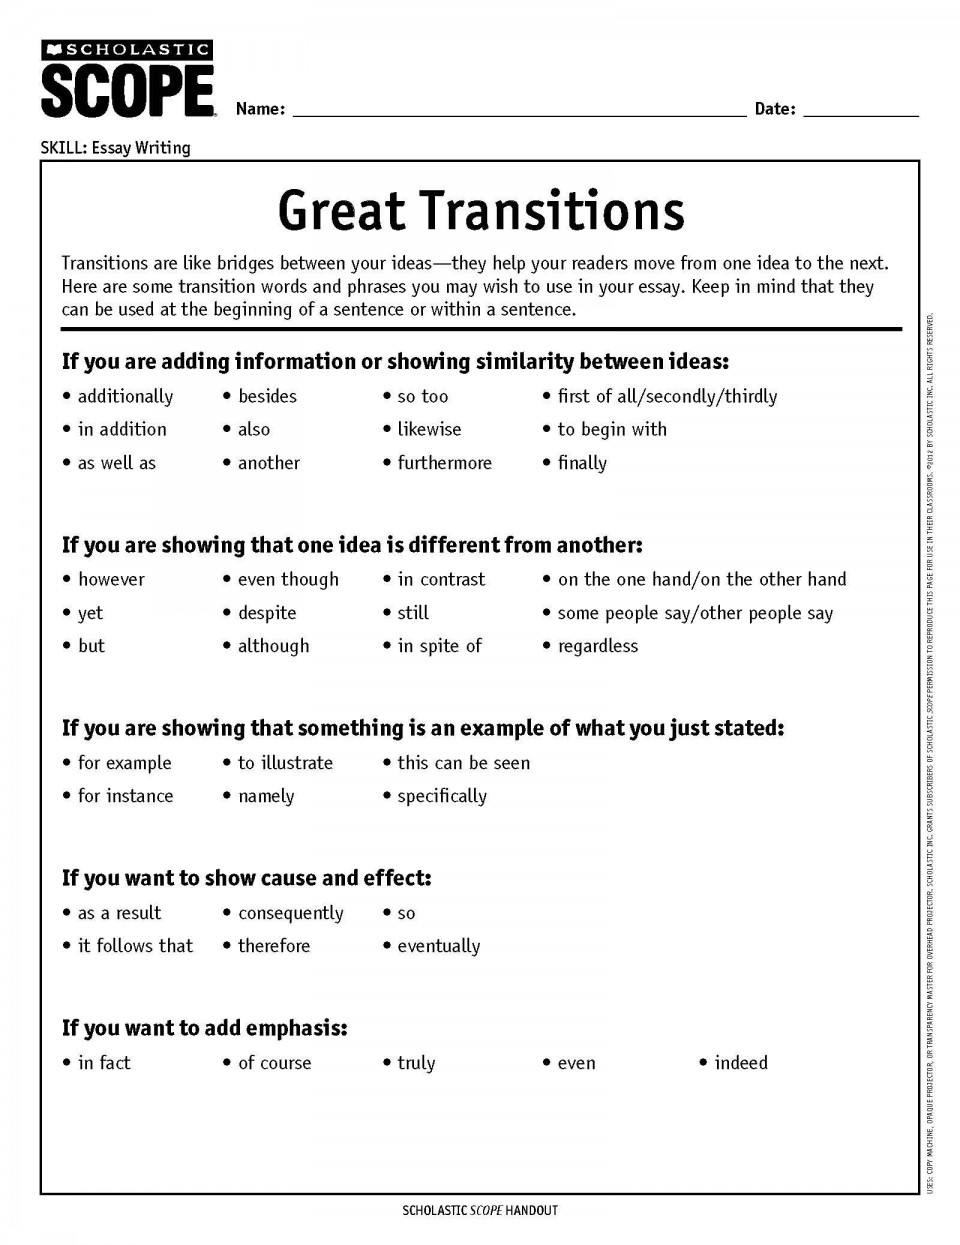 019 Essay Example Transitions How To Choose The Perfect Transition Word Or Phrase Writing Words For An List Of Transitional Essays Pdf Archaicawful Toefl Phrases Five Paragraph Sentences Introduction 960